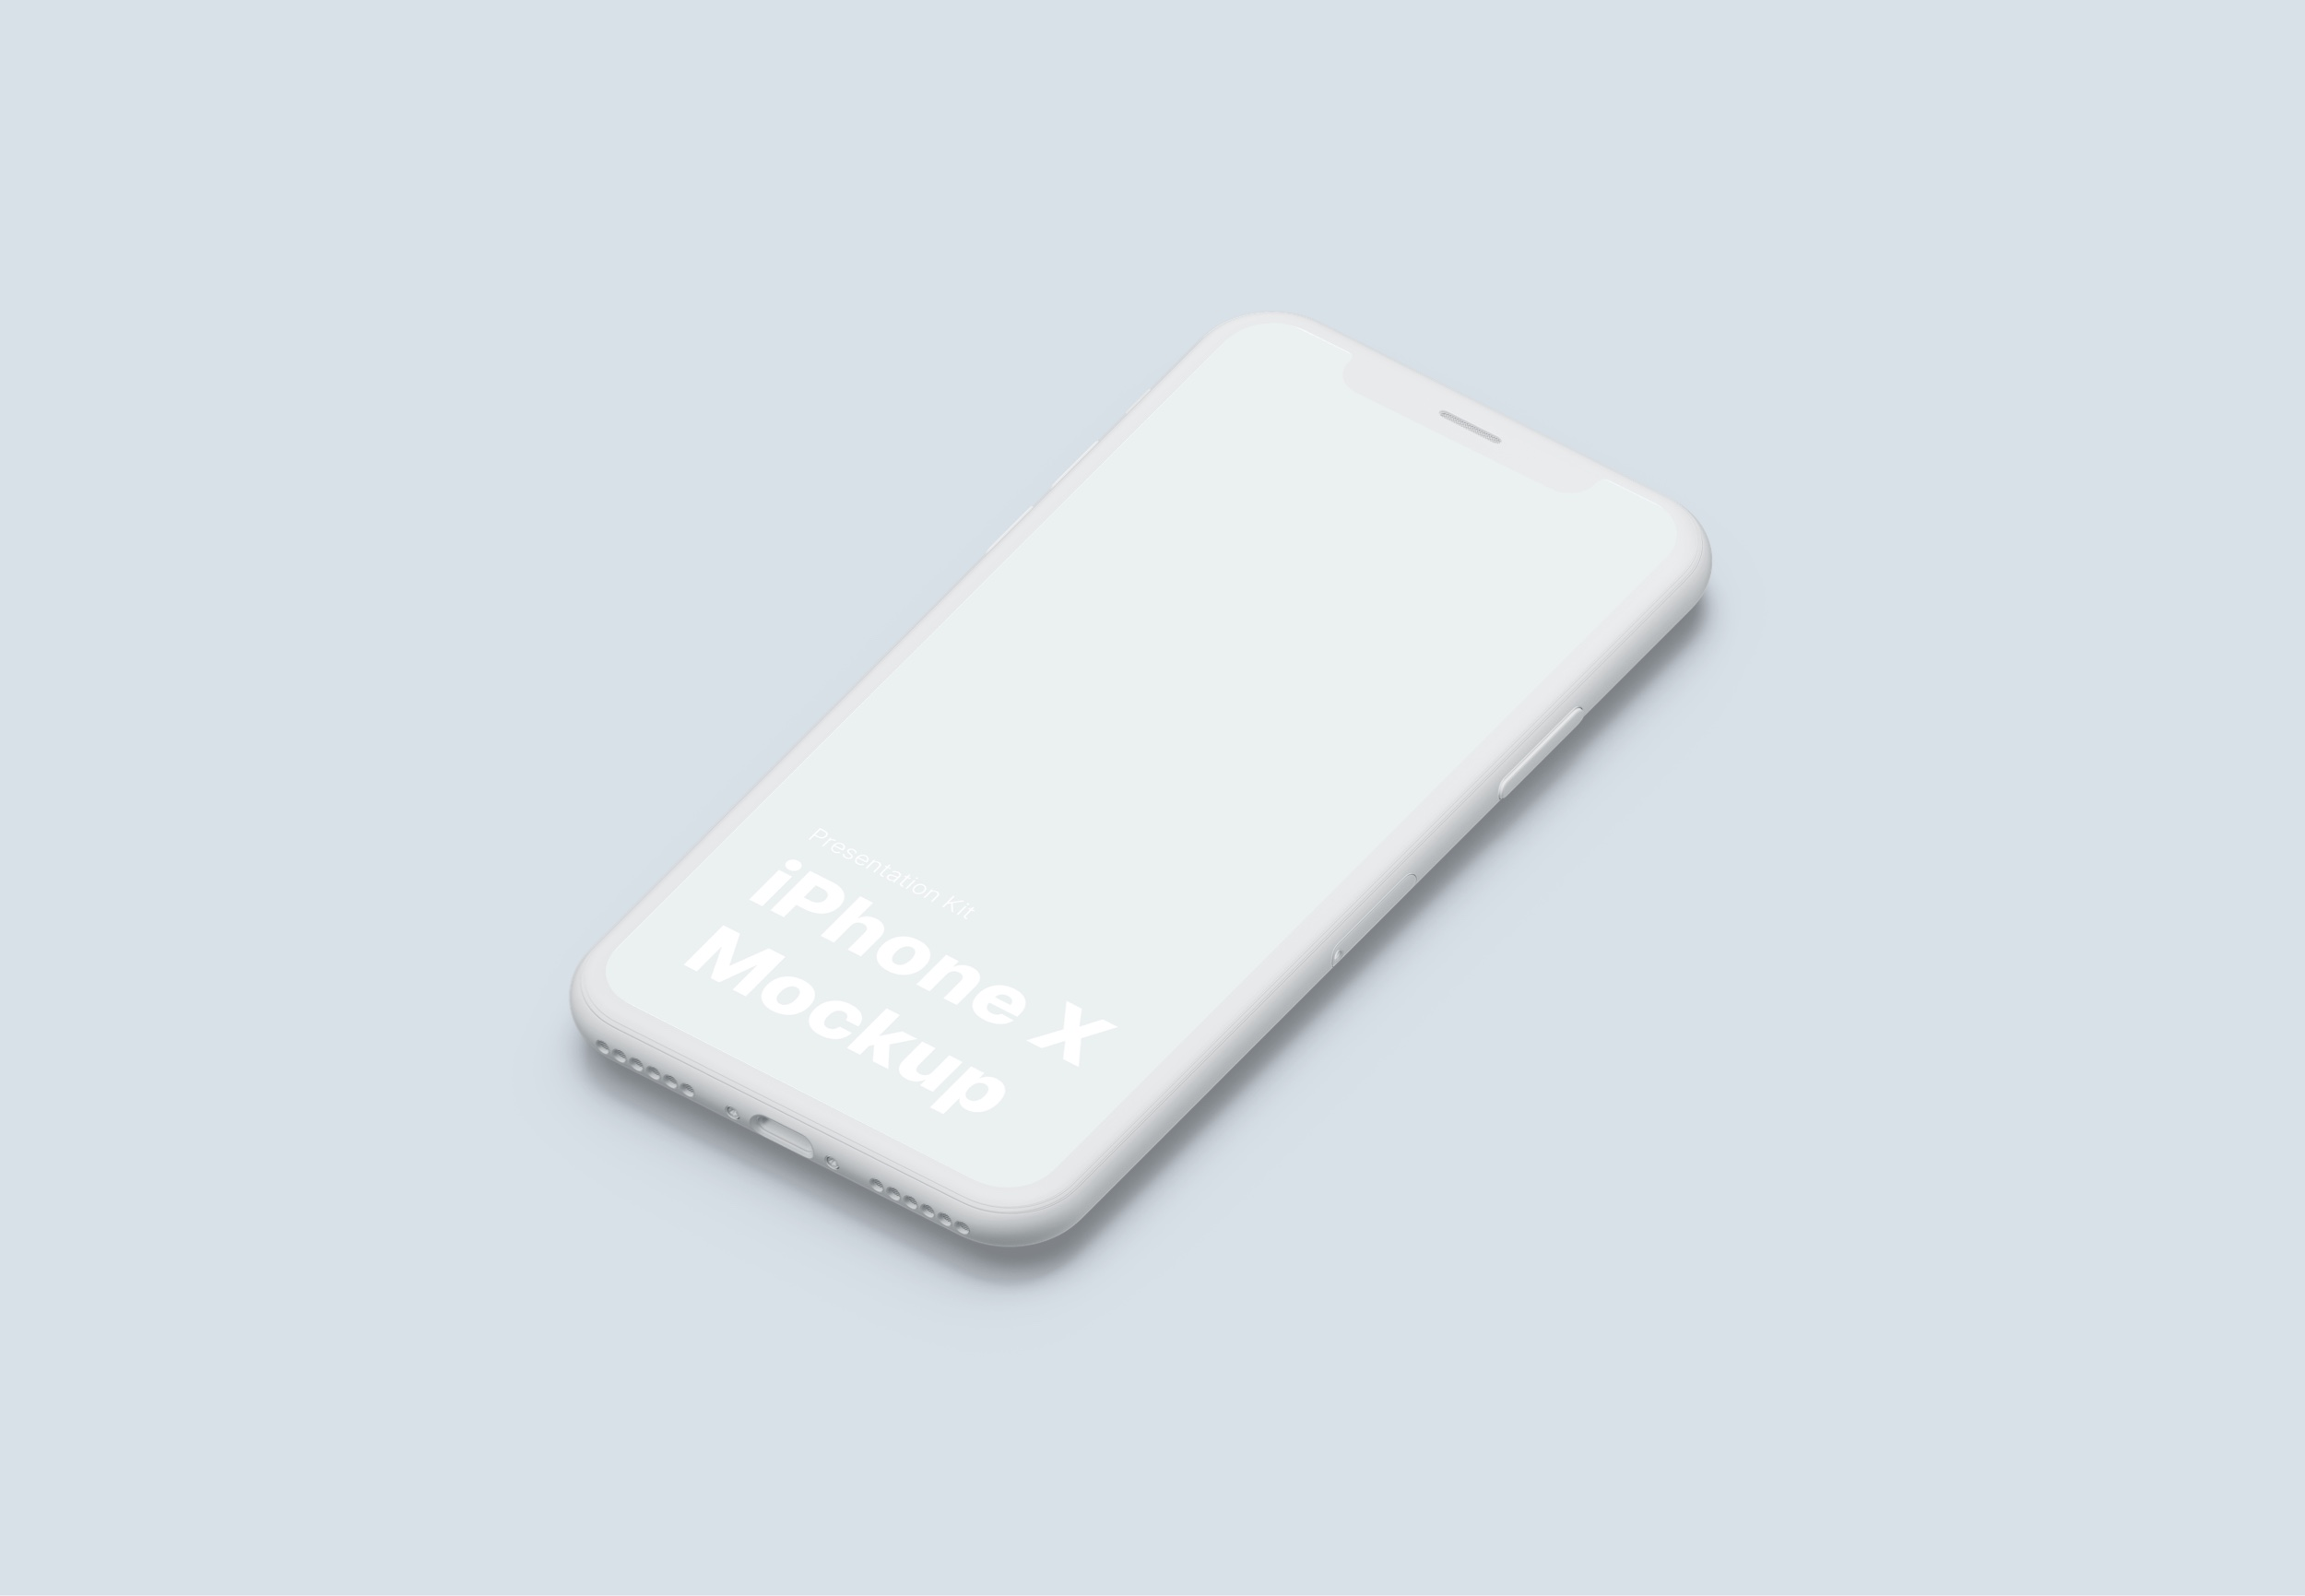 iPhone X Mockup for Sketch, Photoshop, Figma.